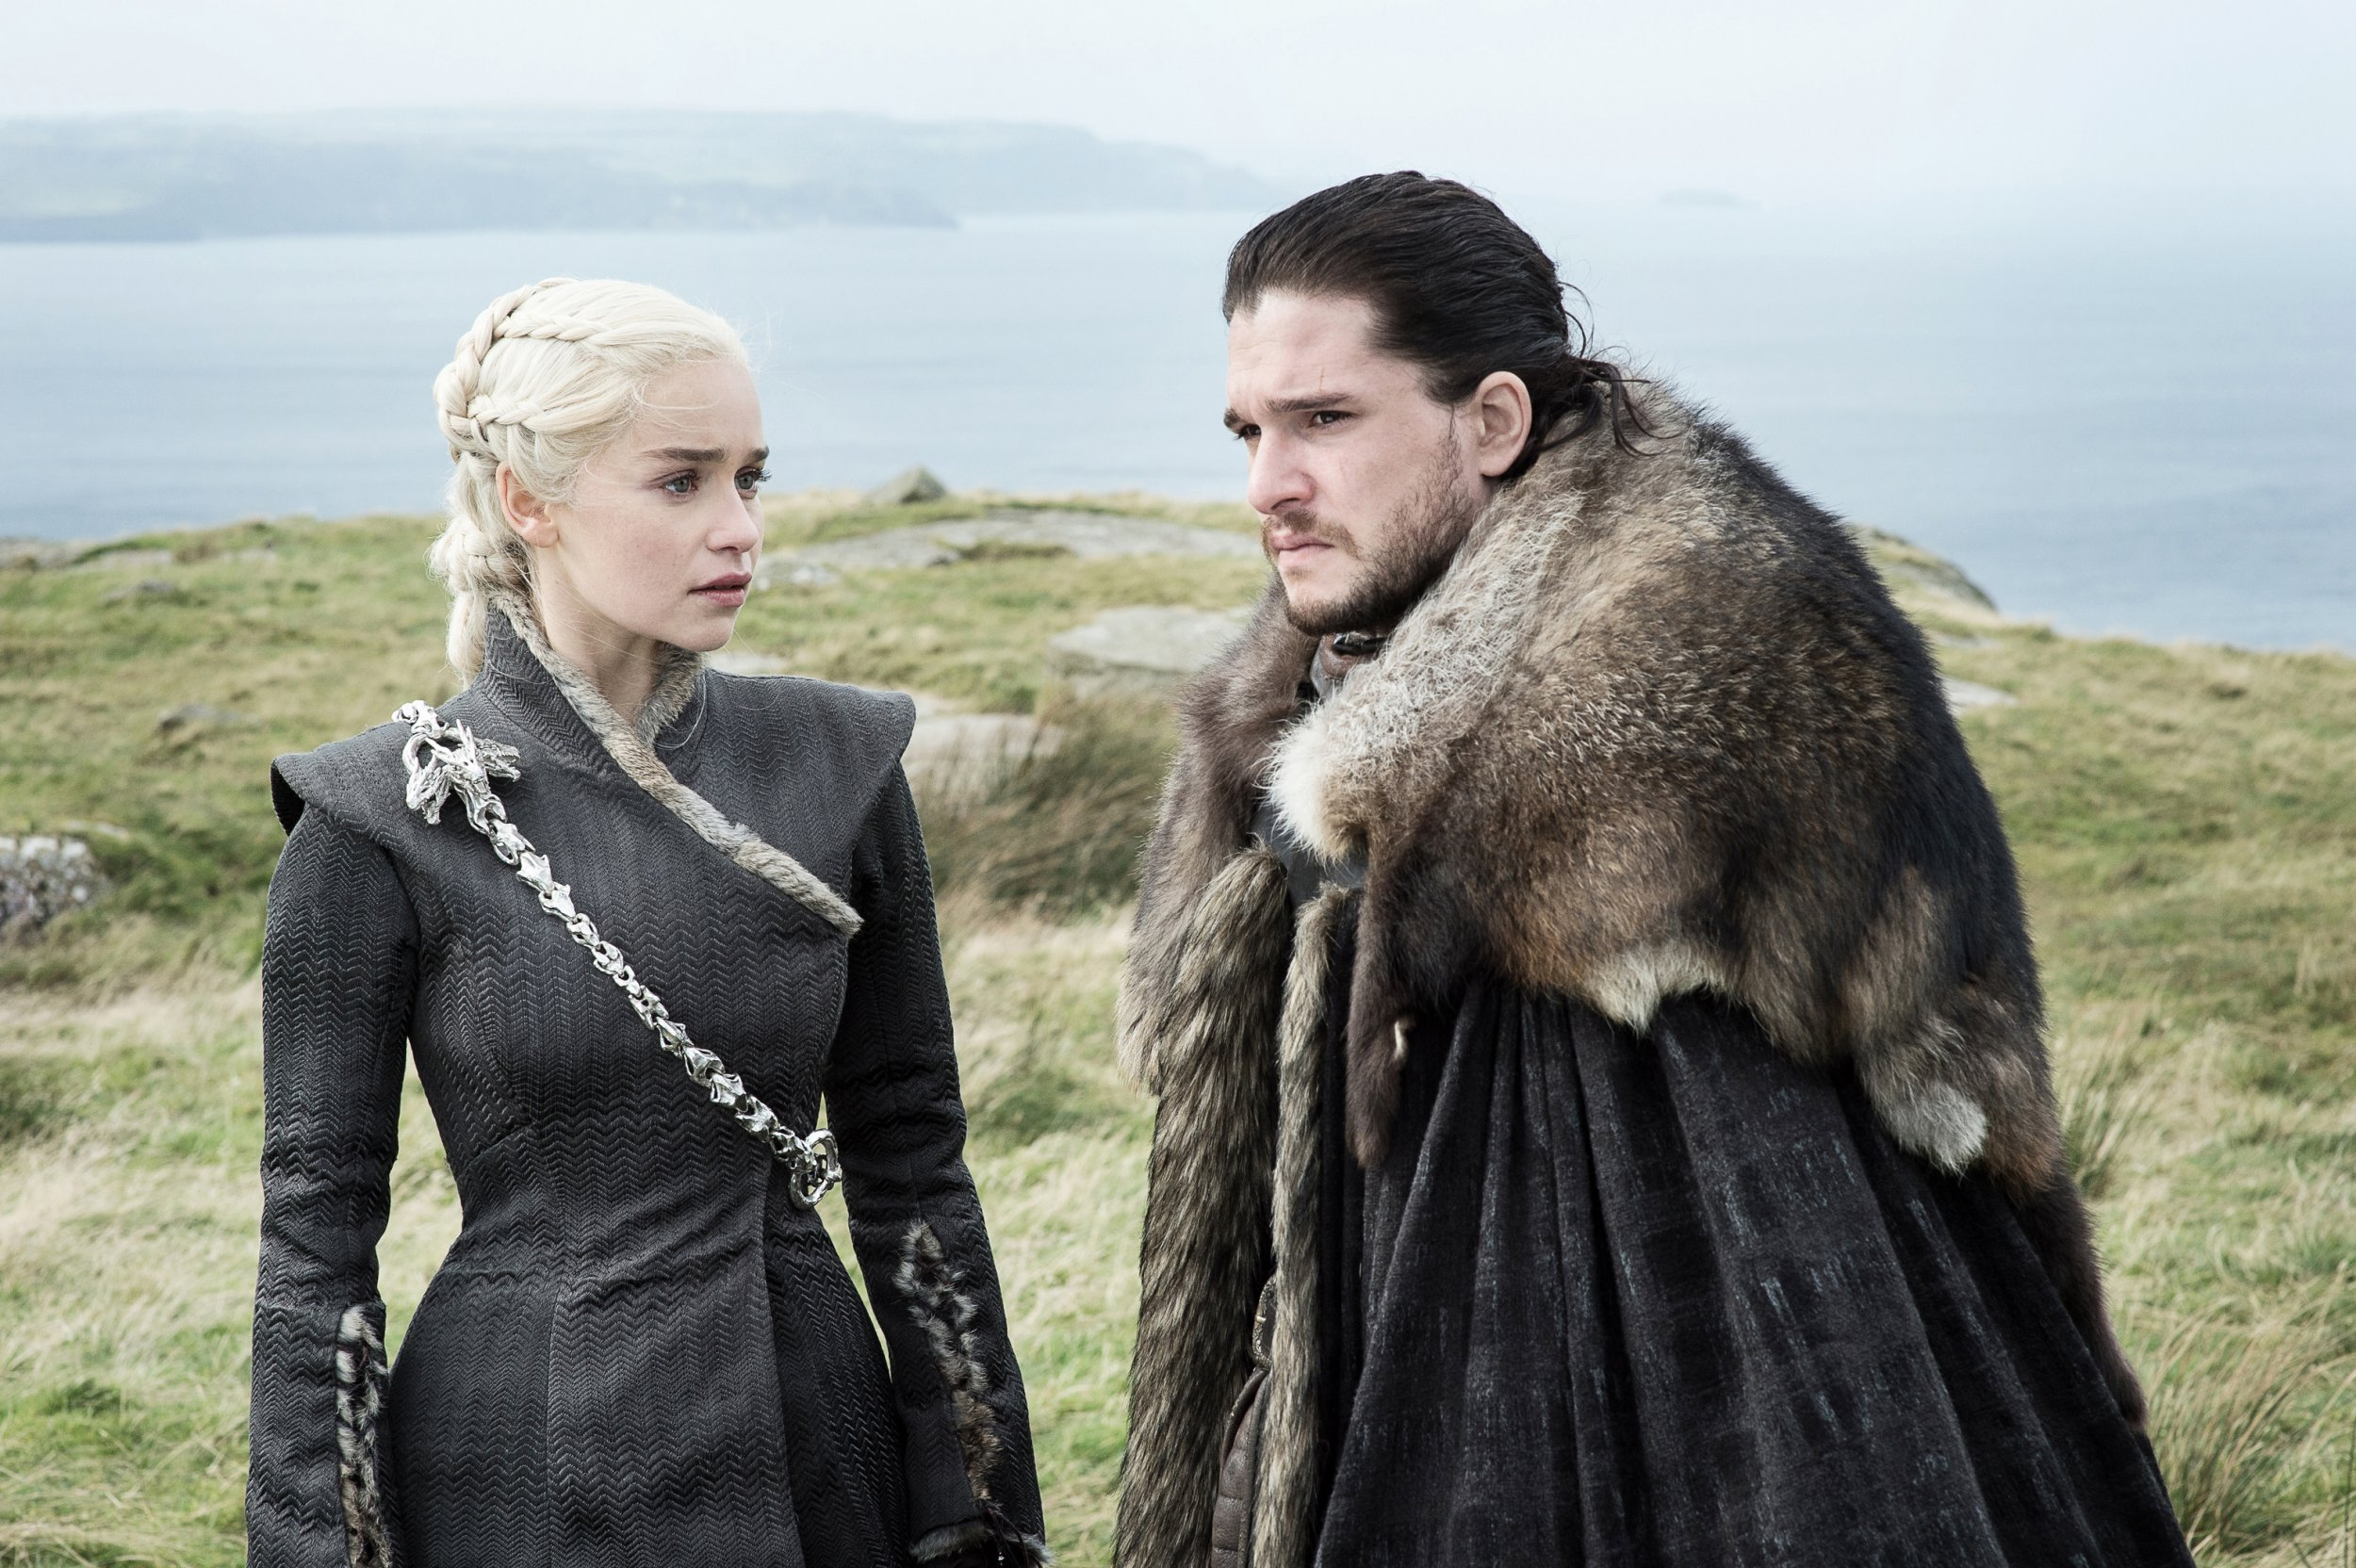 How many episodes are there in Game of Thrones season 8 and what are the running times?